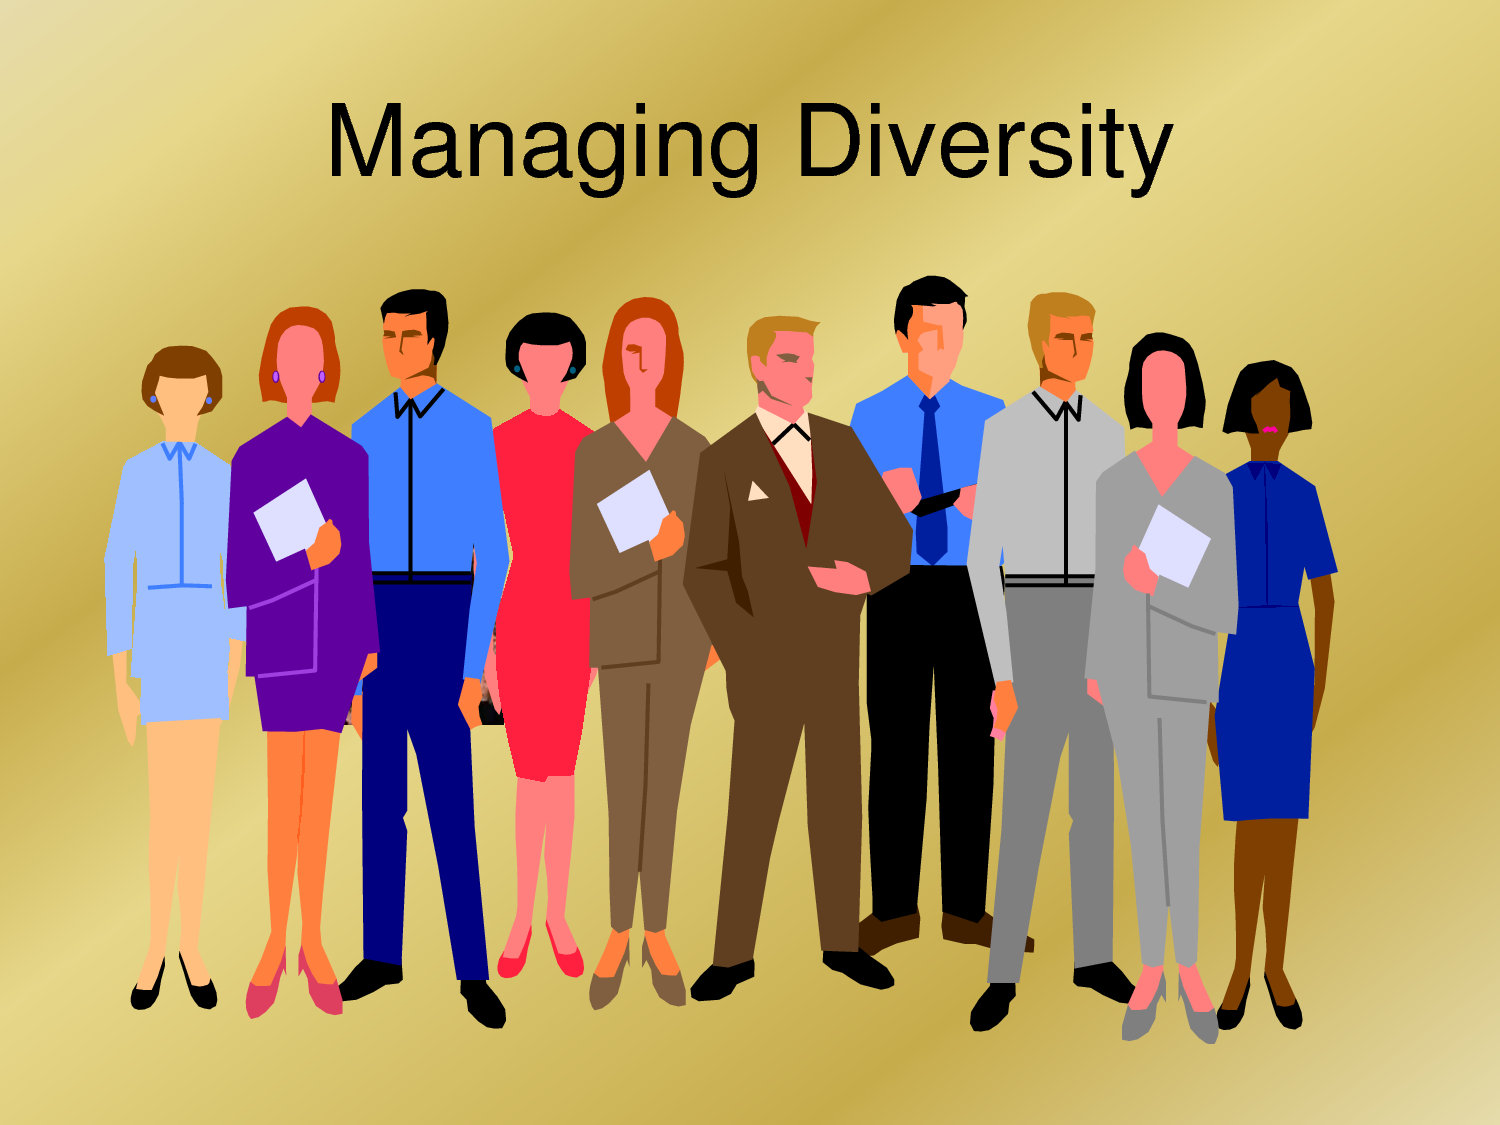 managing workforce diversity essay Workforce diversity management has become an important issue for both governments and private organizations workforce planning essay.